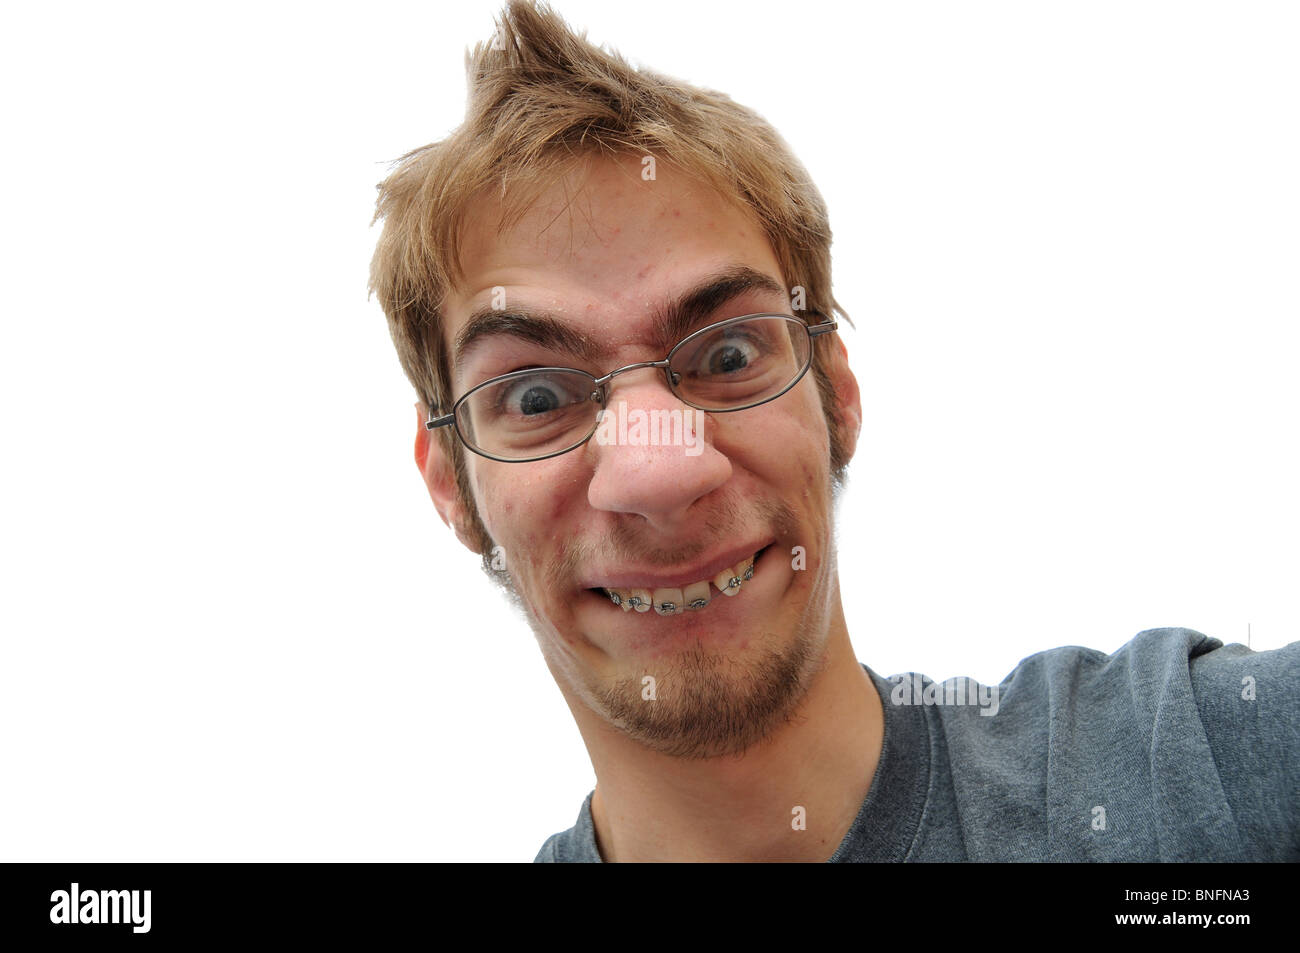 Man showing his braces face close up - Stock Image